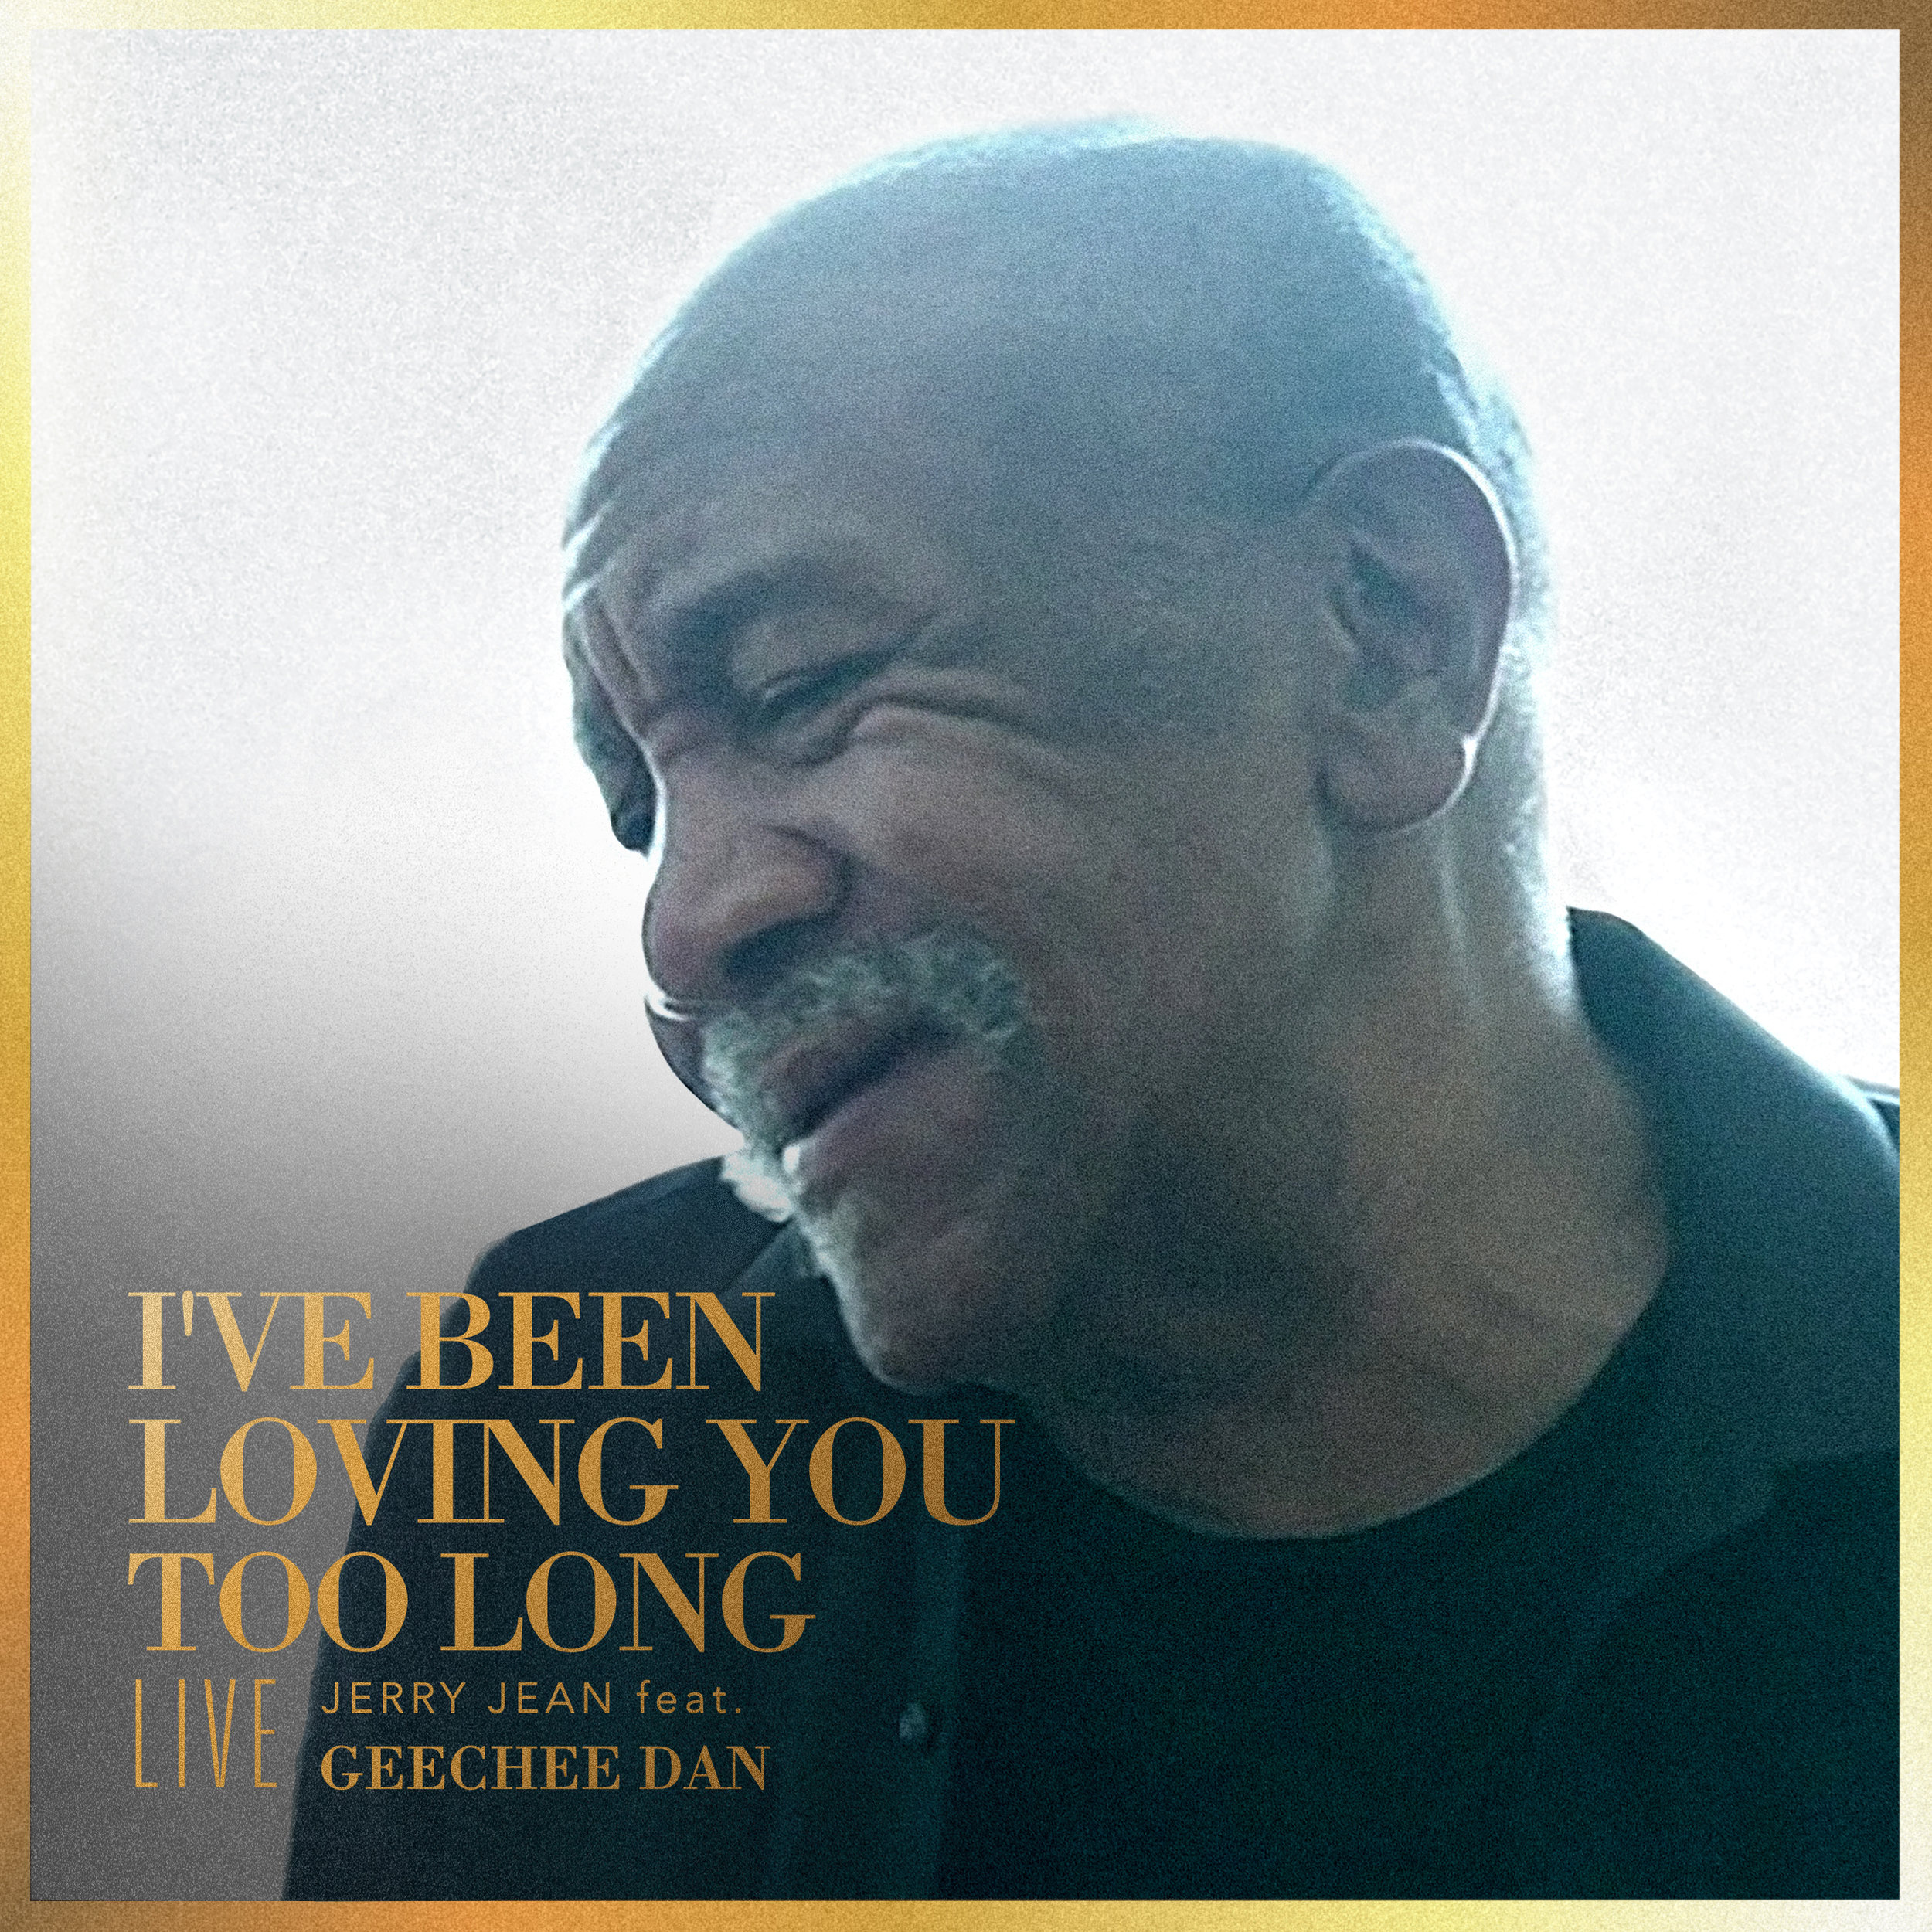 I've Been Loving You Too Long (Live) [Jerry Jean feat. Geechee Dan]